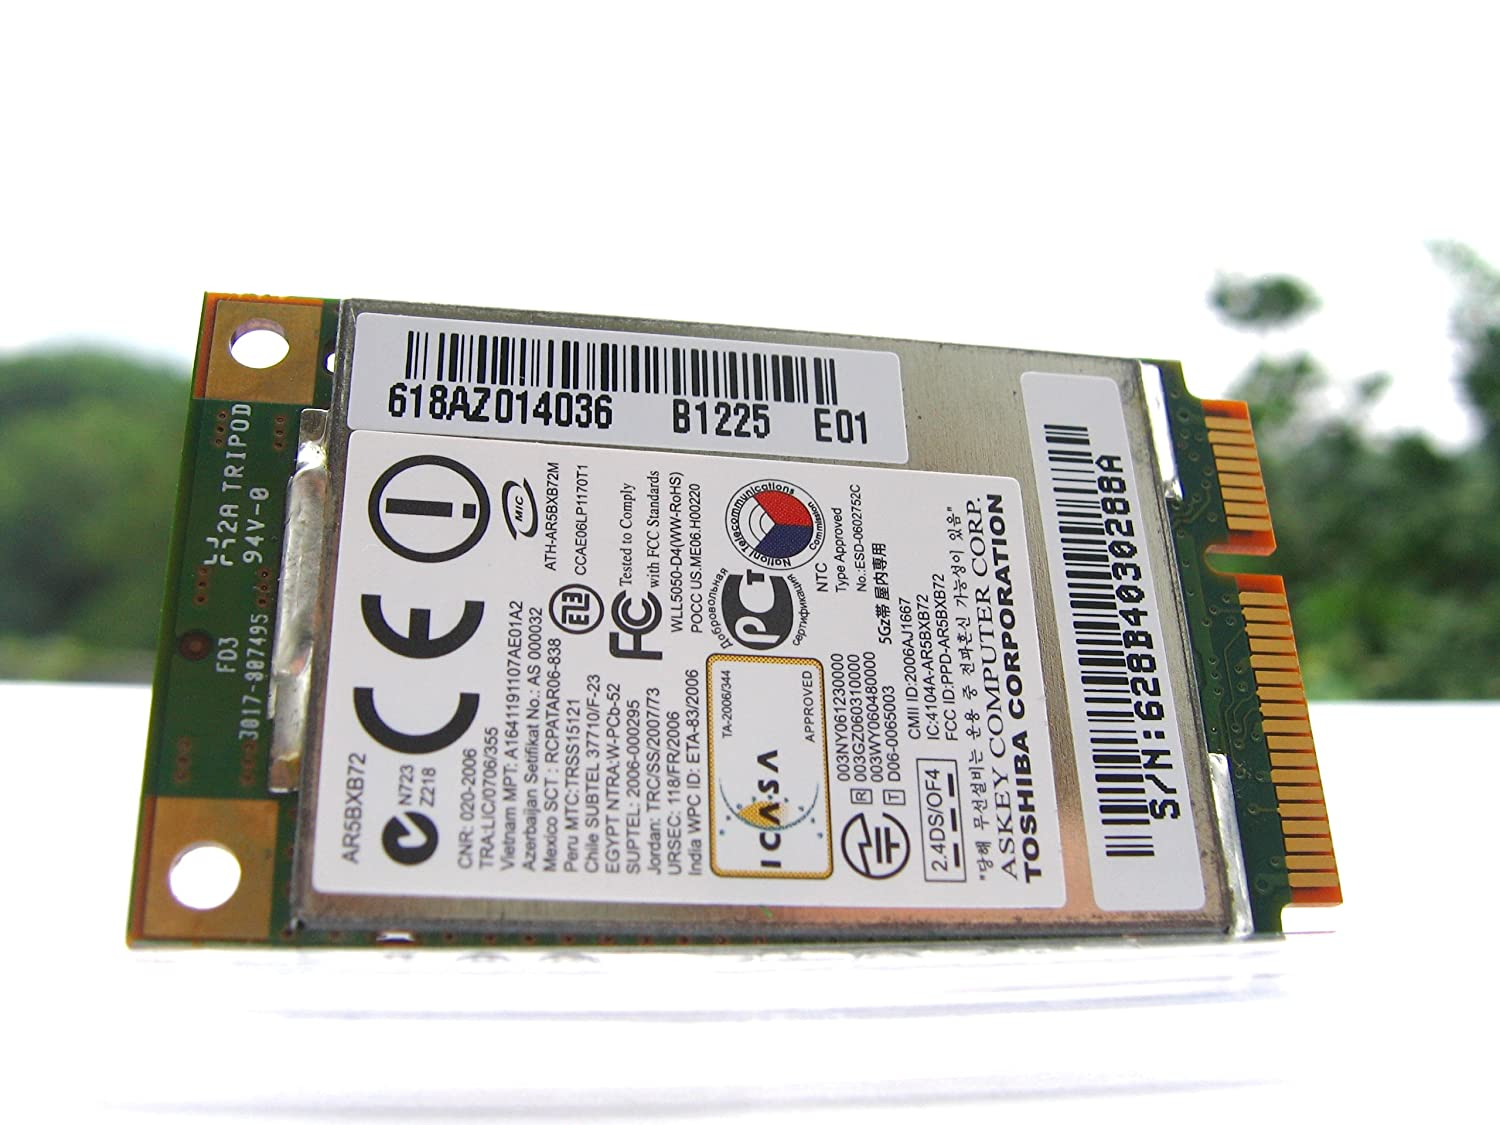 Atheros 5418 AR5BXB72 AR5008 WiFi Mini-PCI 802.11 abgn: Amazon.es: Electrónica